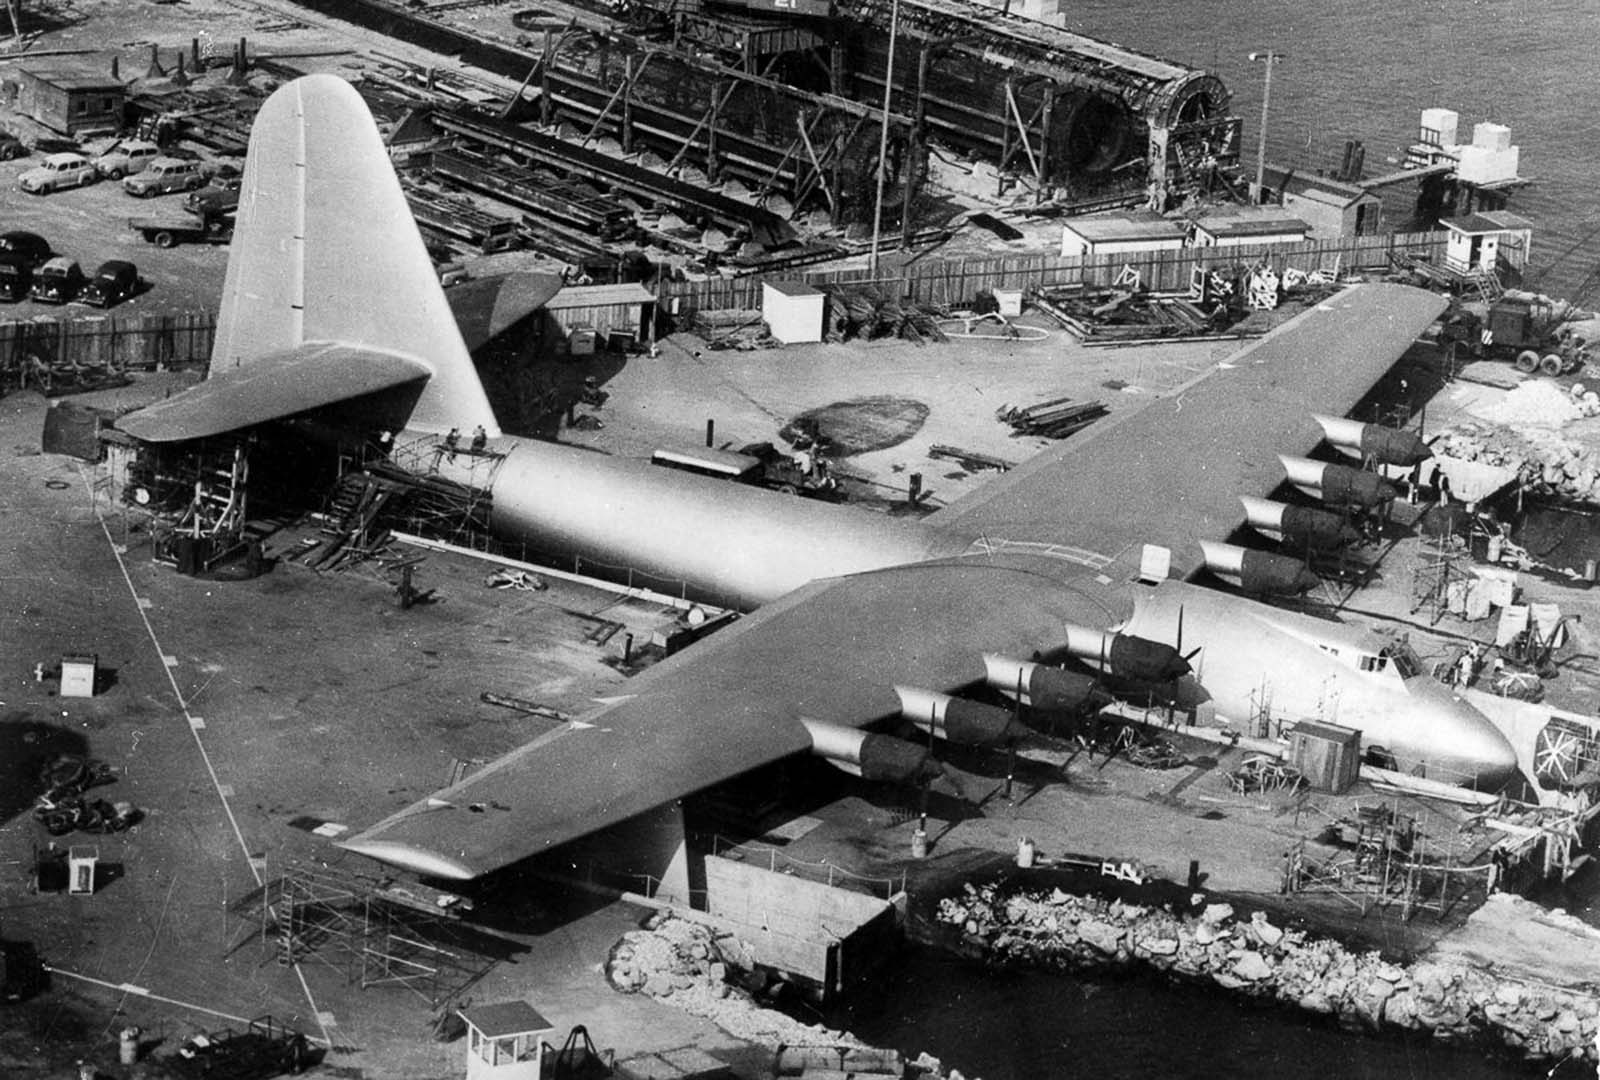 The plane was built by the Hughes Aircraft Company at Hughes Airport, location of present-day Playa Vista, Los Angeles, California, employing the plywood-and-resin